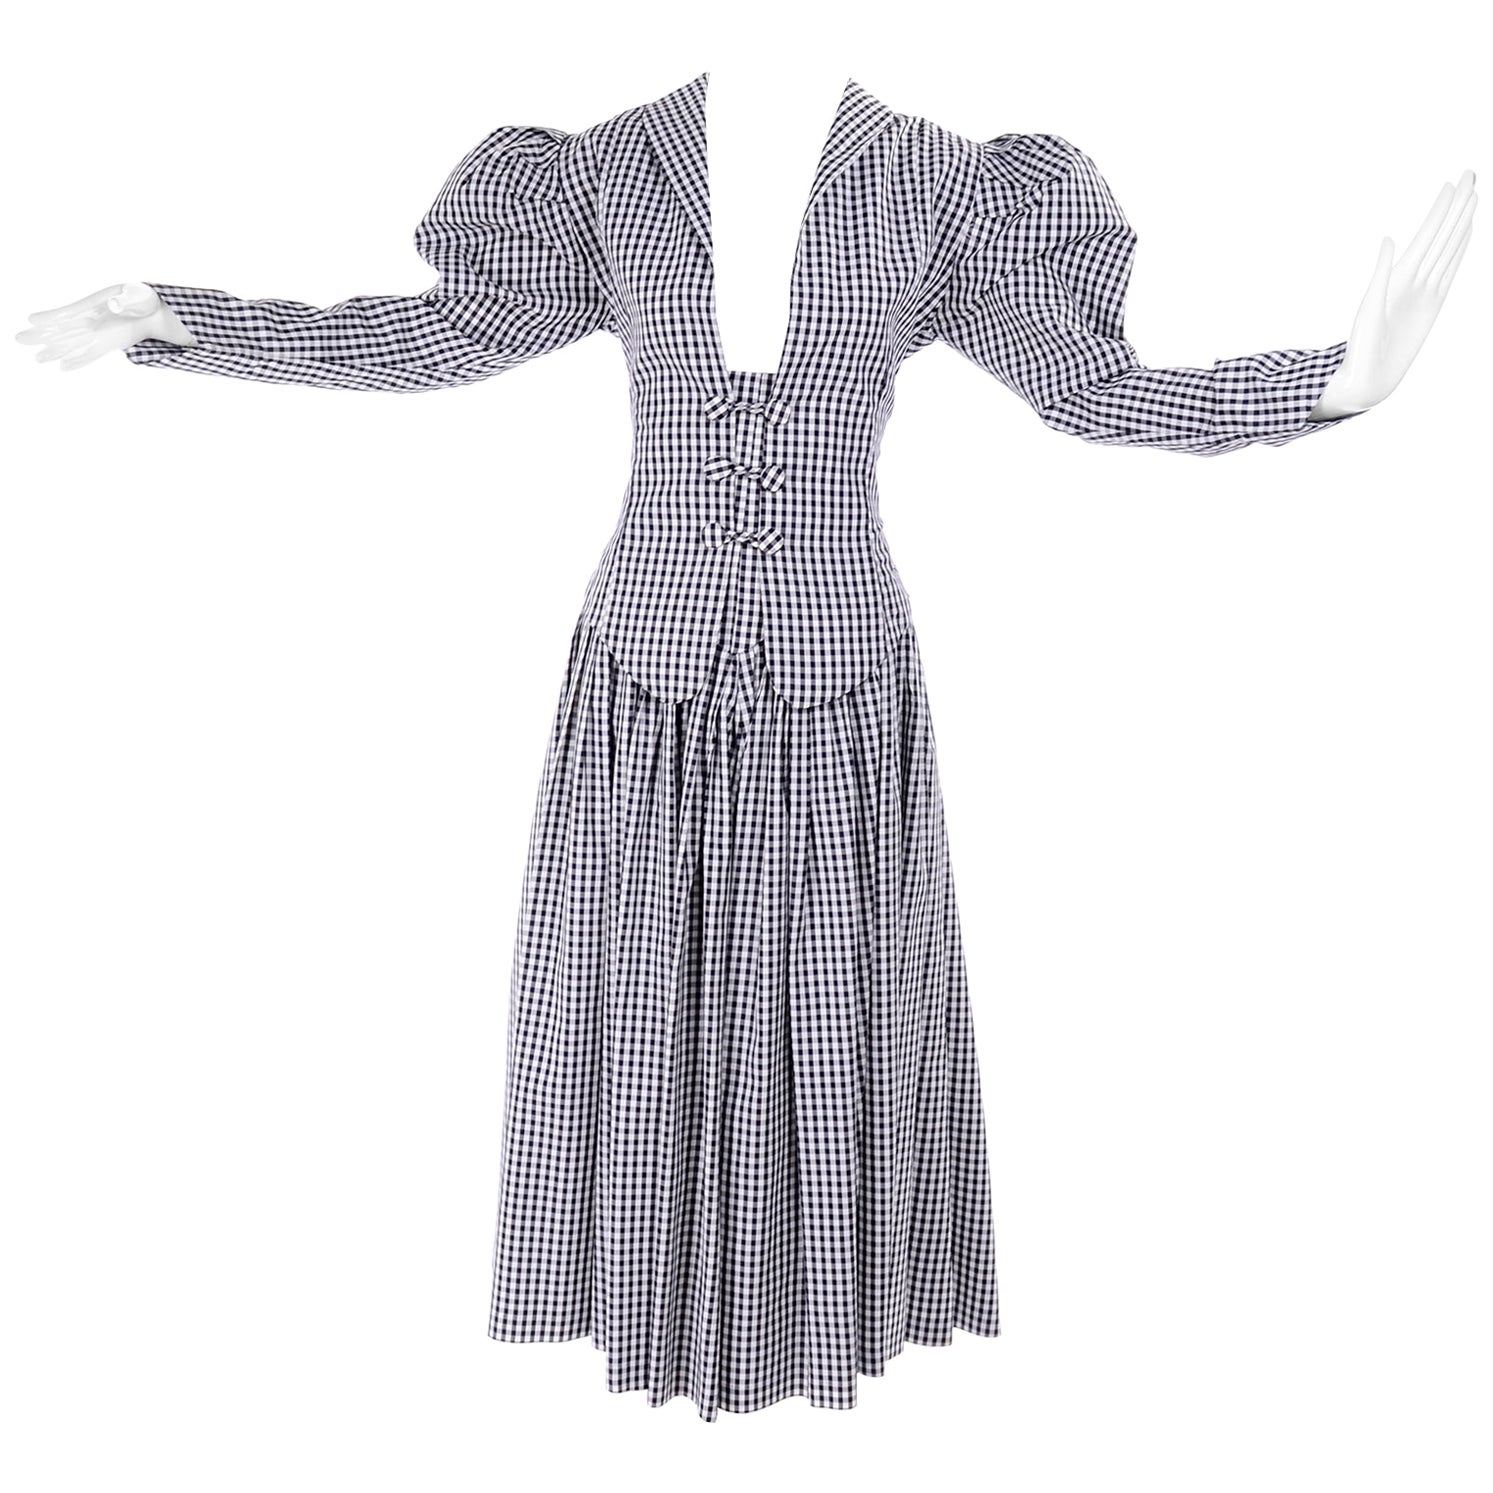 1980s Norma Kamali 2 Pc Victorian Dress in Black & White Check w Puff Sleeves